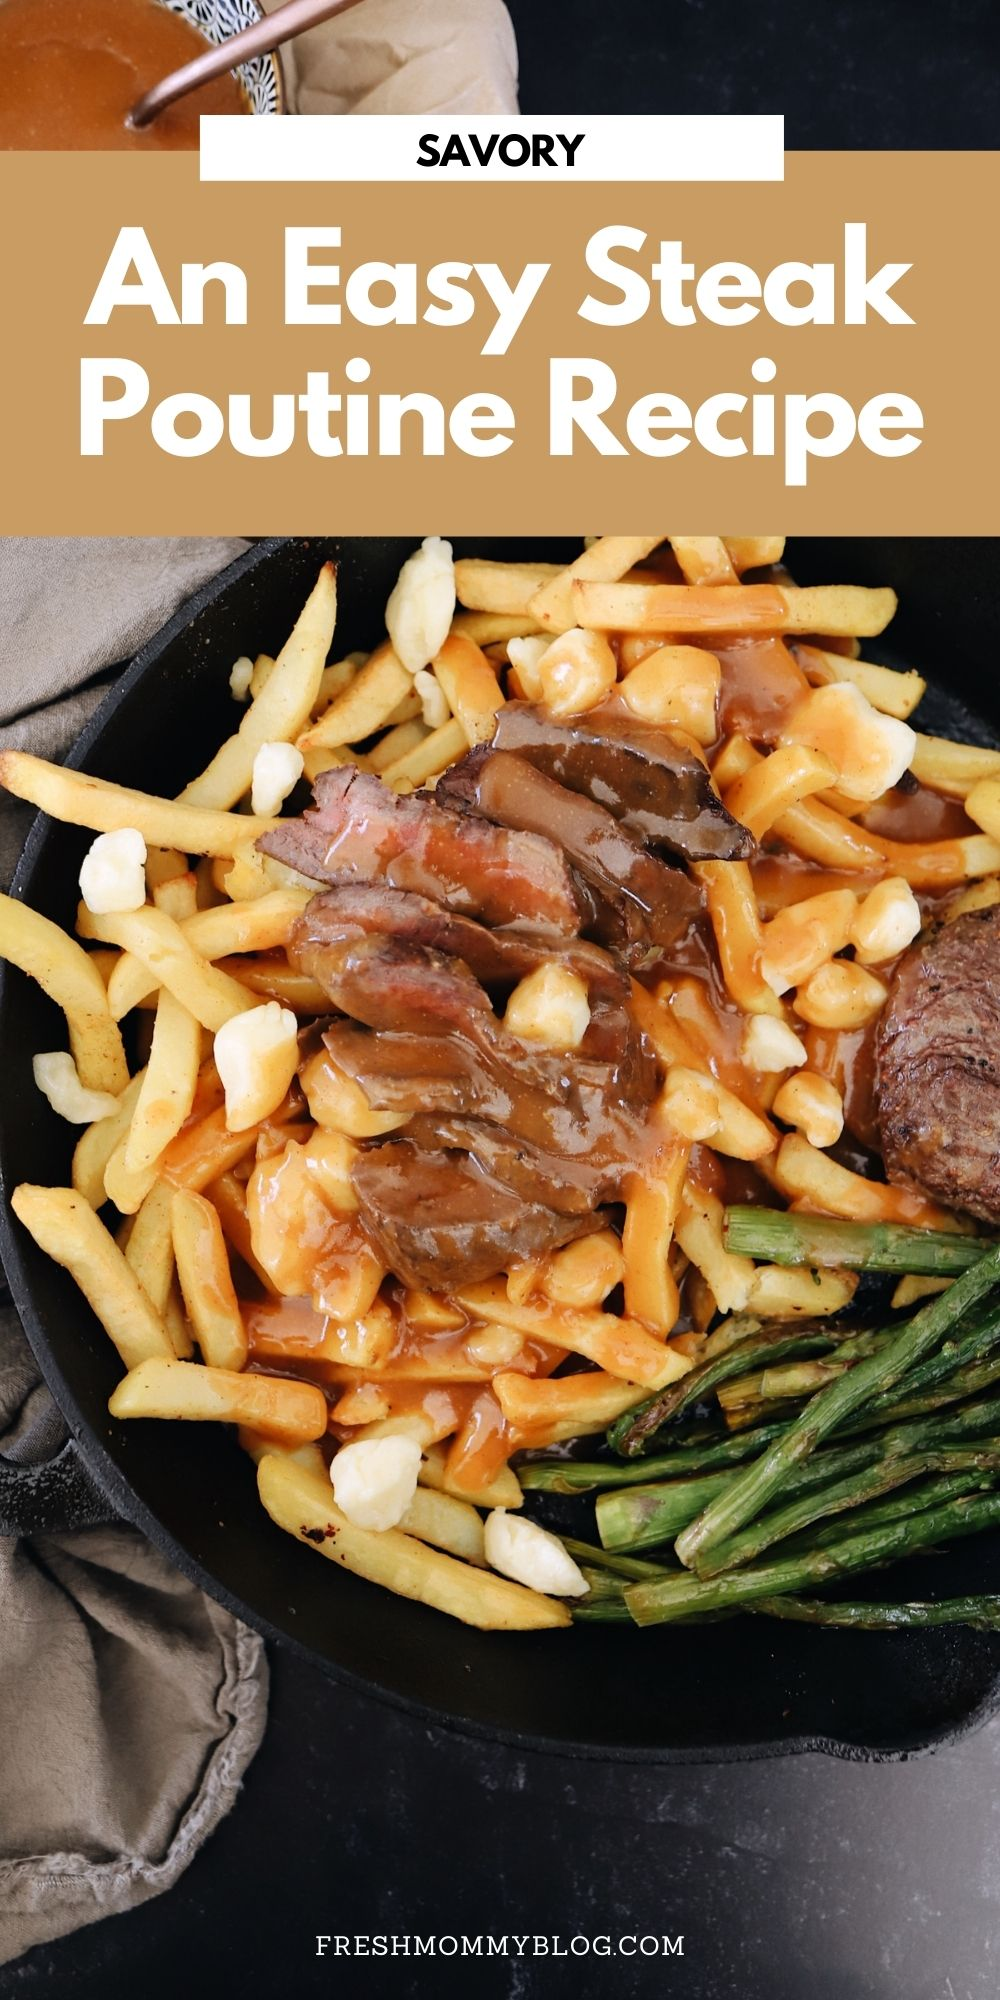 An Easy Steak Poutine Recipe with Fries and Gravy |Poutine Recipe by popular Florida lifestyle blog, Fresh Mommy Blog: Pinterest image of poutine.